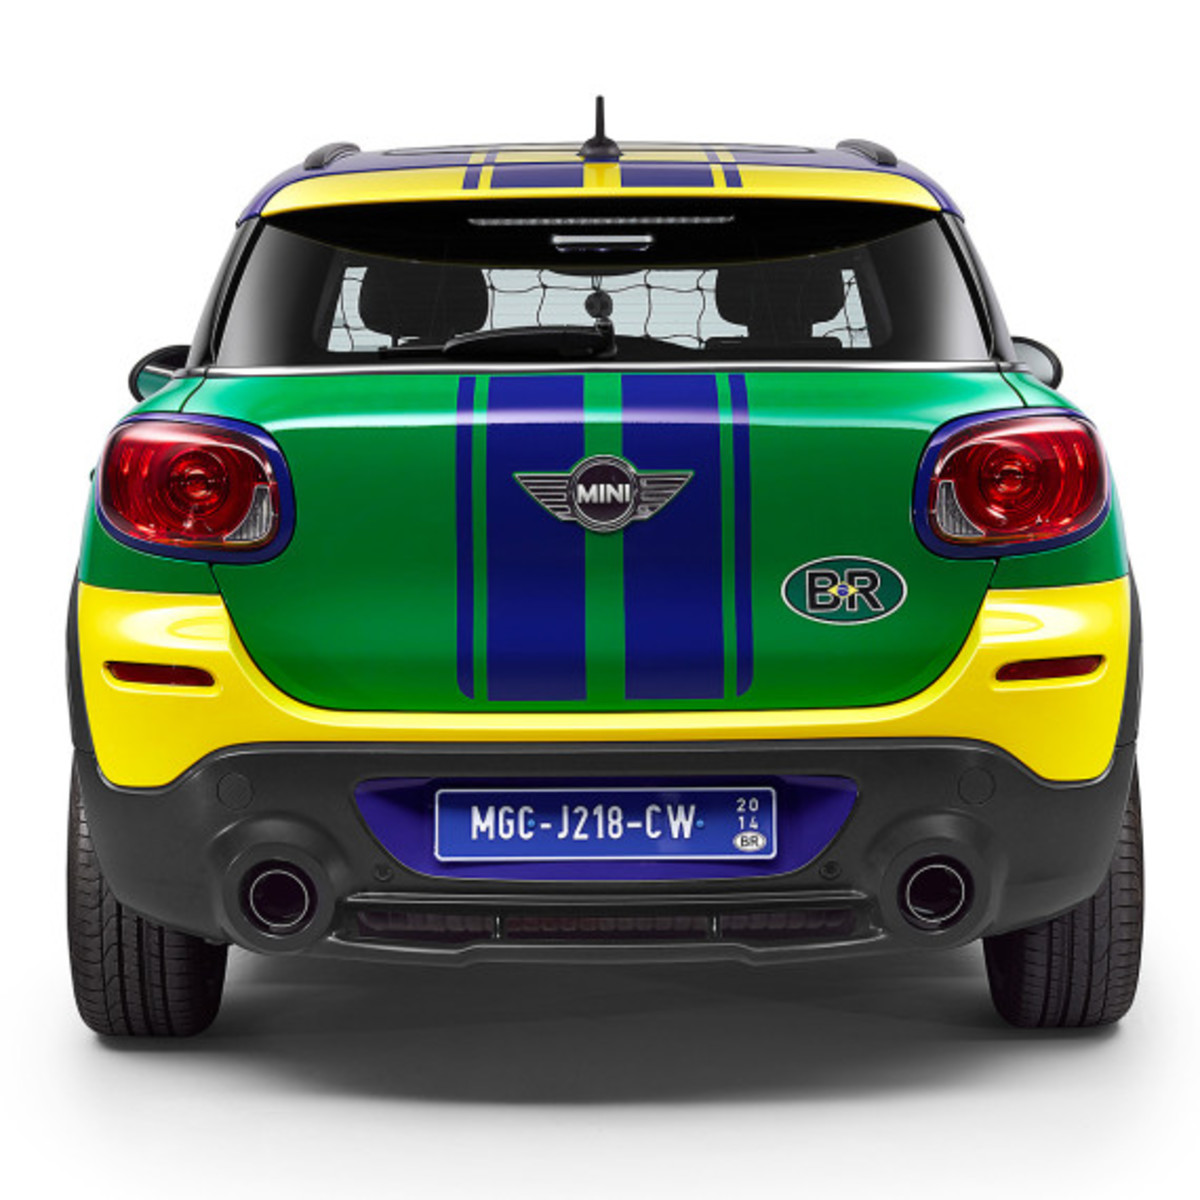 MINI Paceman GoalCooper - Featuring Soccer Pitch and Auto Tailgate Goalkeeper - 9